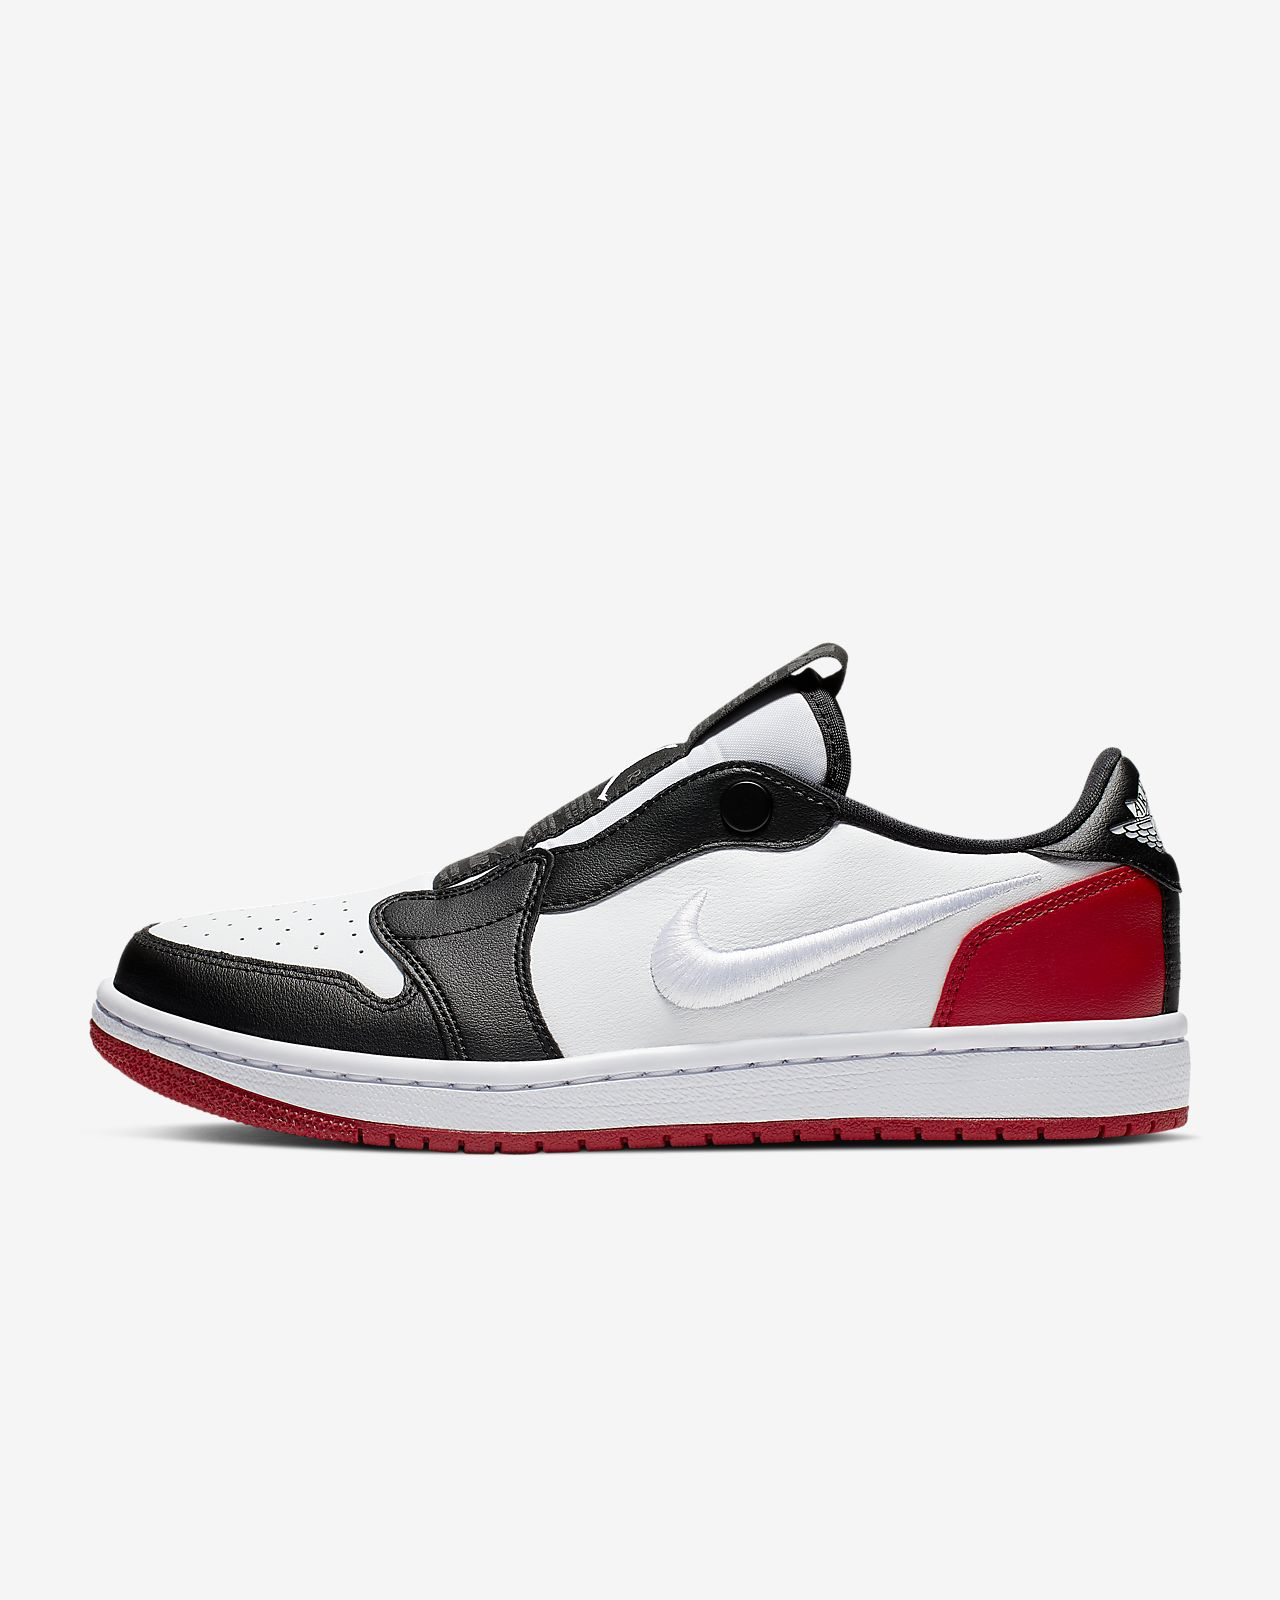 Buty damskie Air Jordan 1 Retro Low Slip